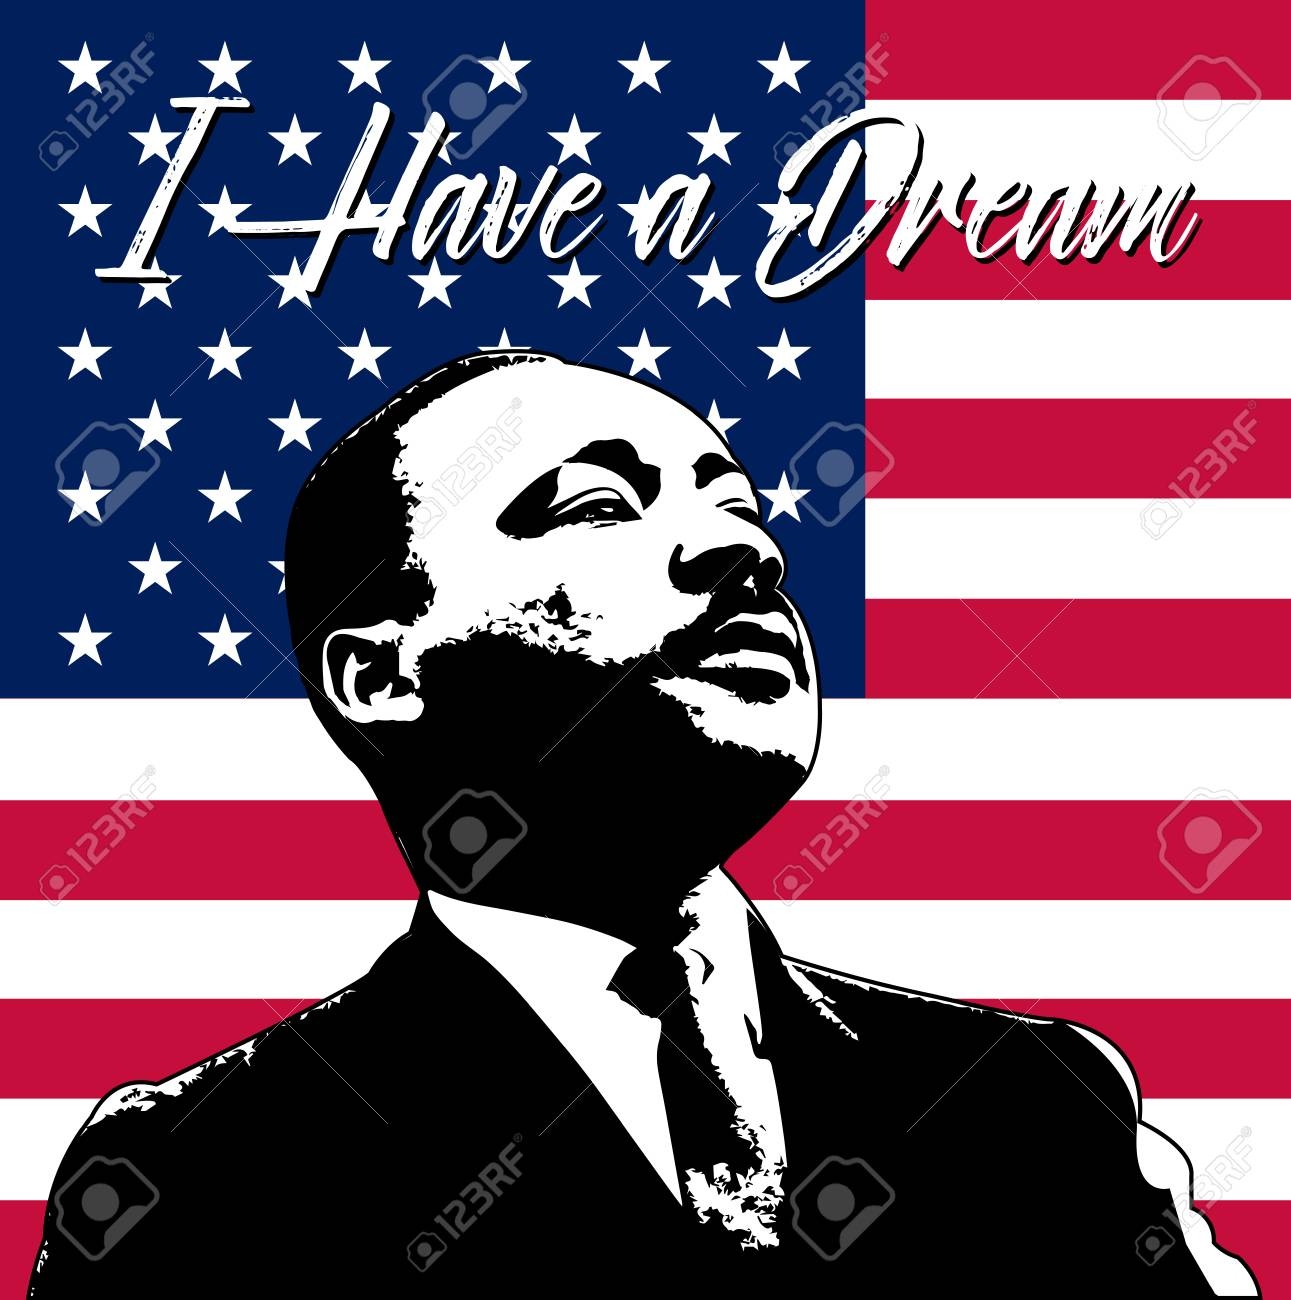 Martin Luther King Day Background Illustration Of Martin Luther